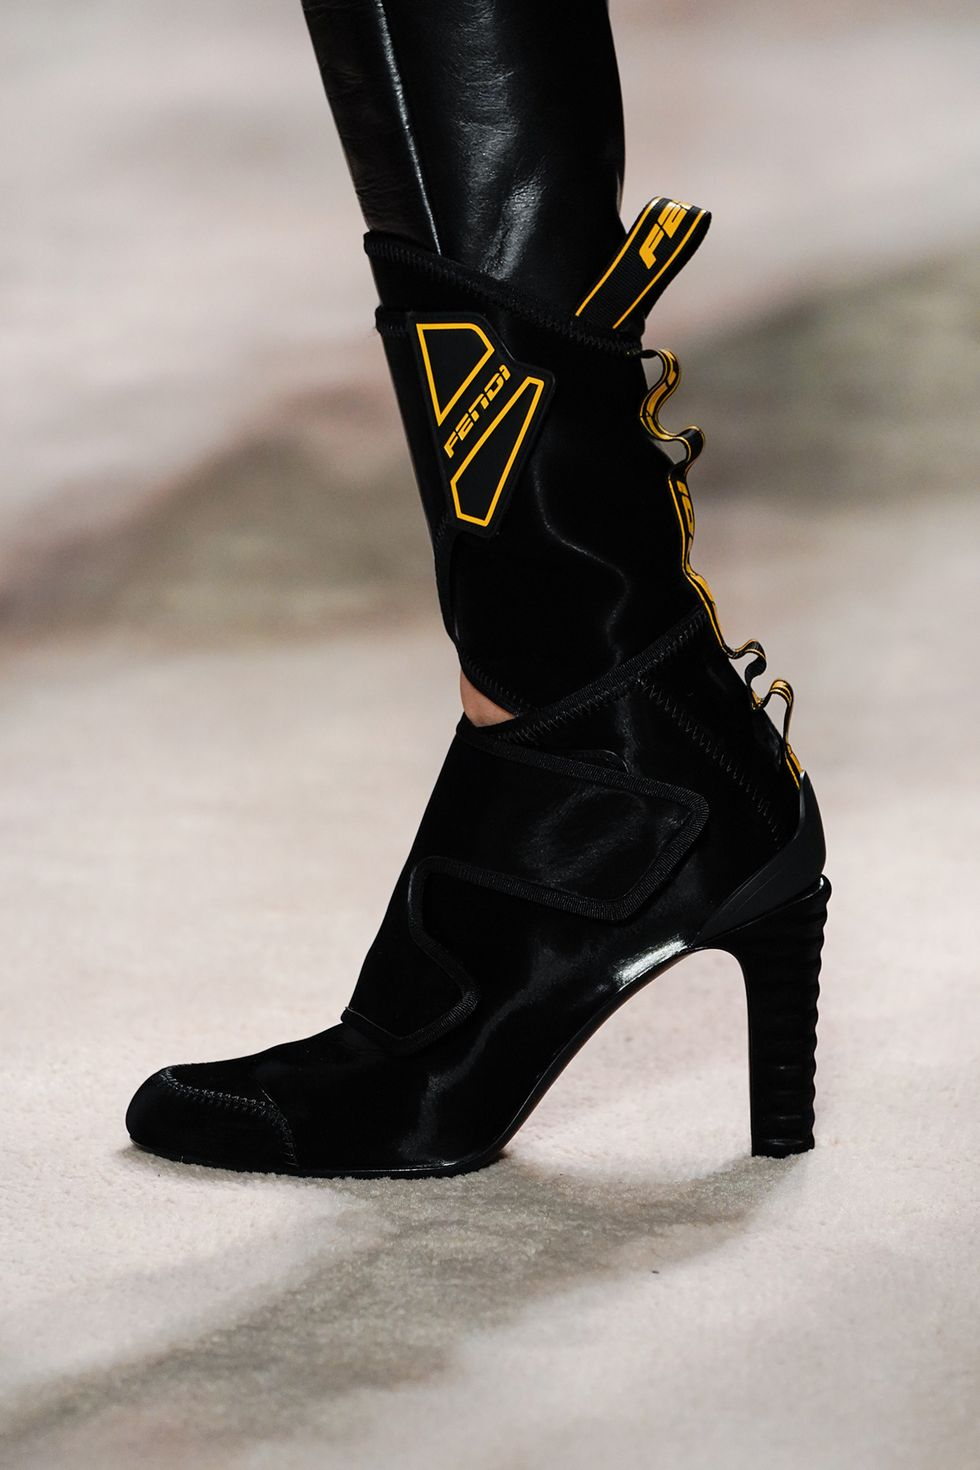 fendi-fall-2020-runway-black-boots-1582236668.jpg (980×1470)